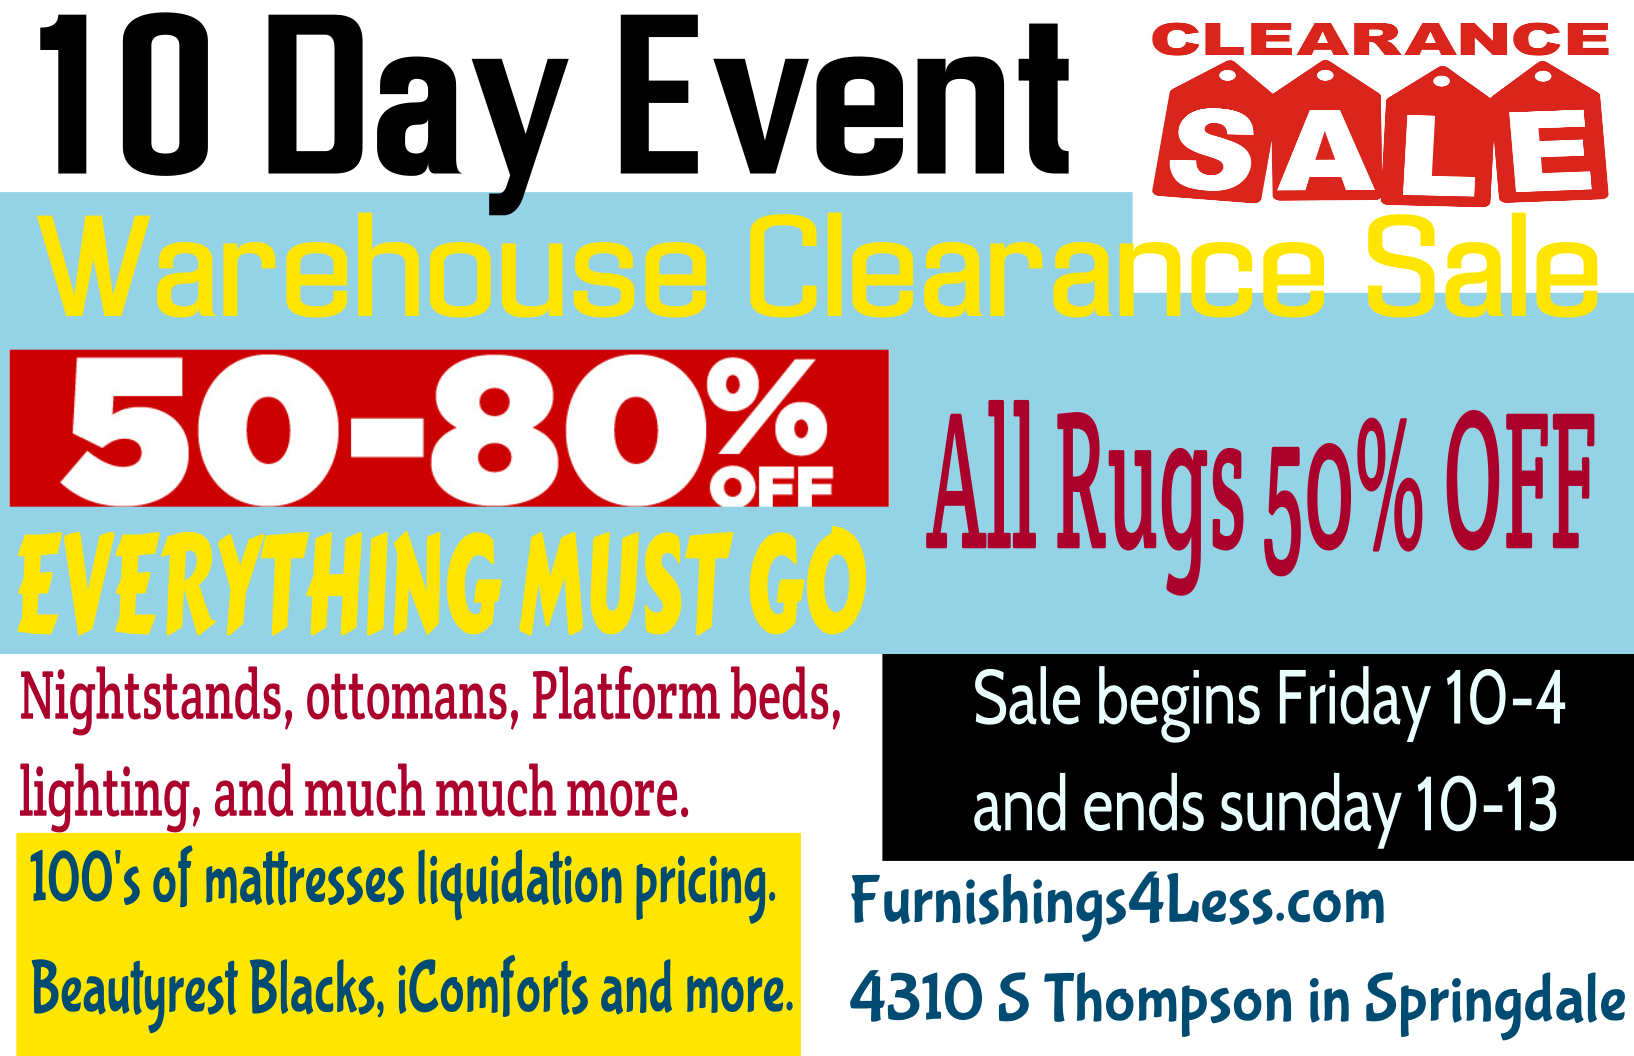 Rug and mattresses at best prices. Platform beds nightstand and more furniture.